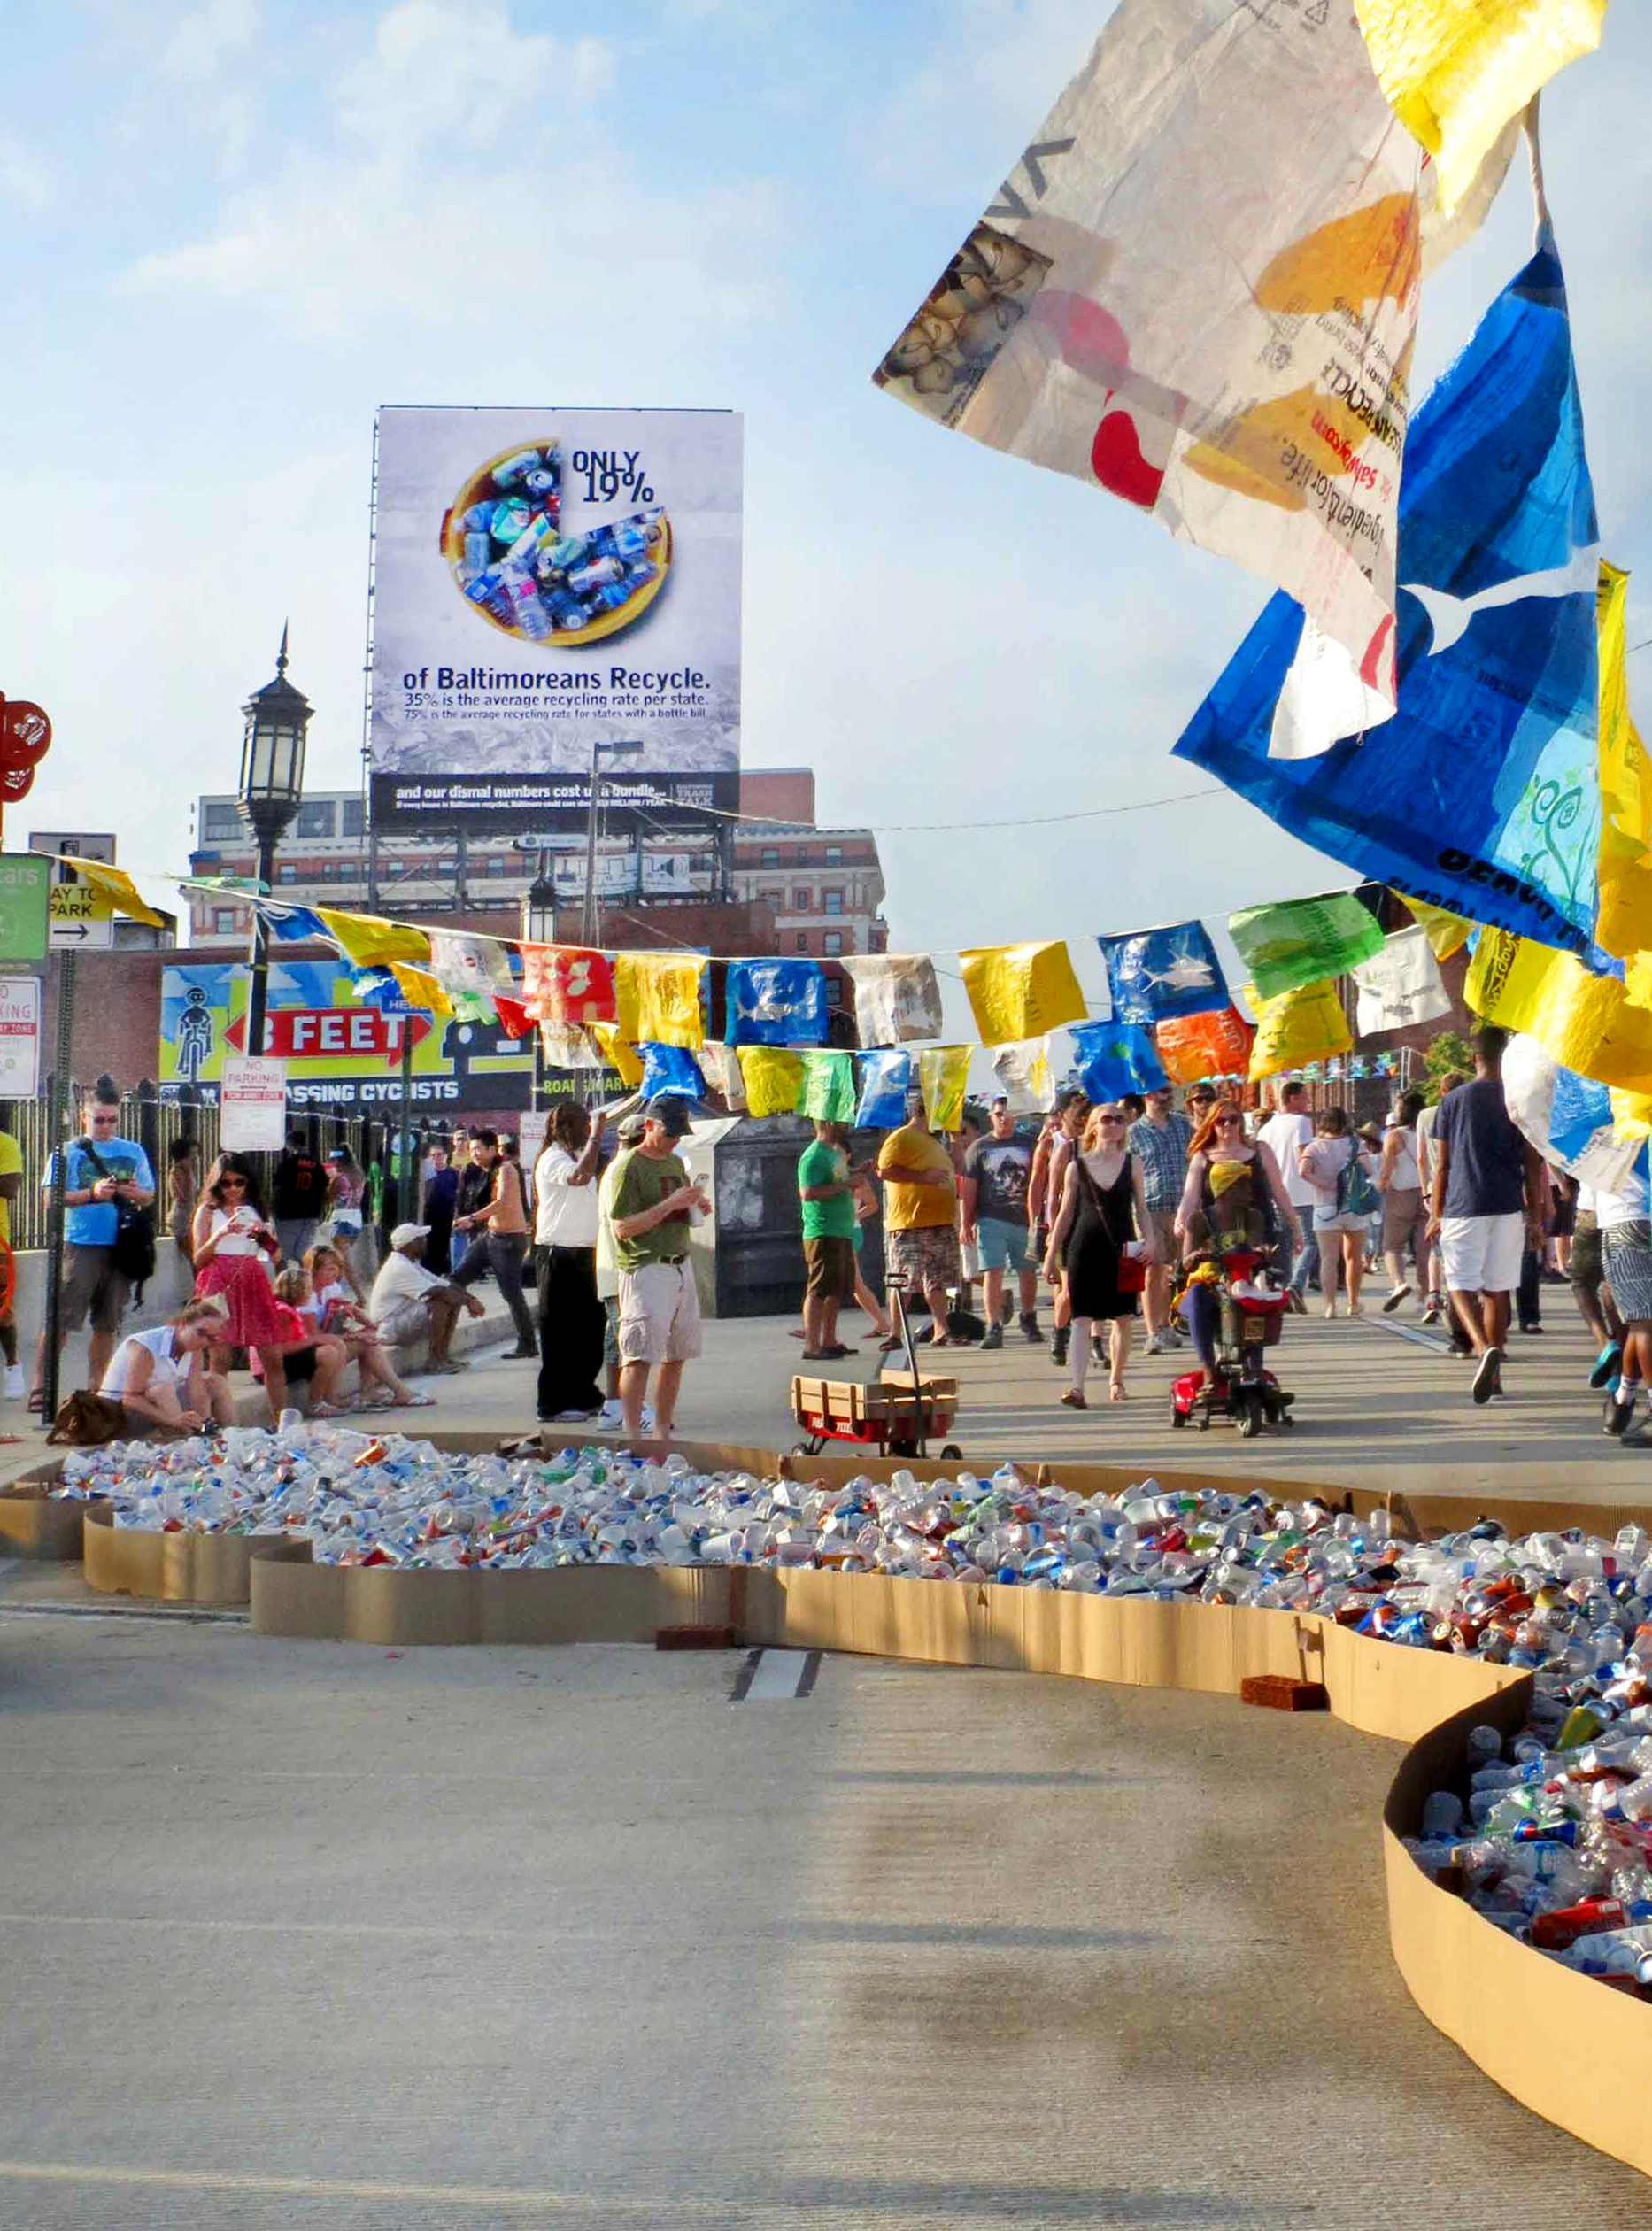 River of Recyclable items accompanied by 100 plastic bag flags with sea creatures cut in them.